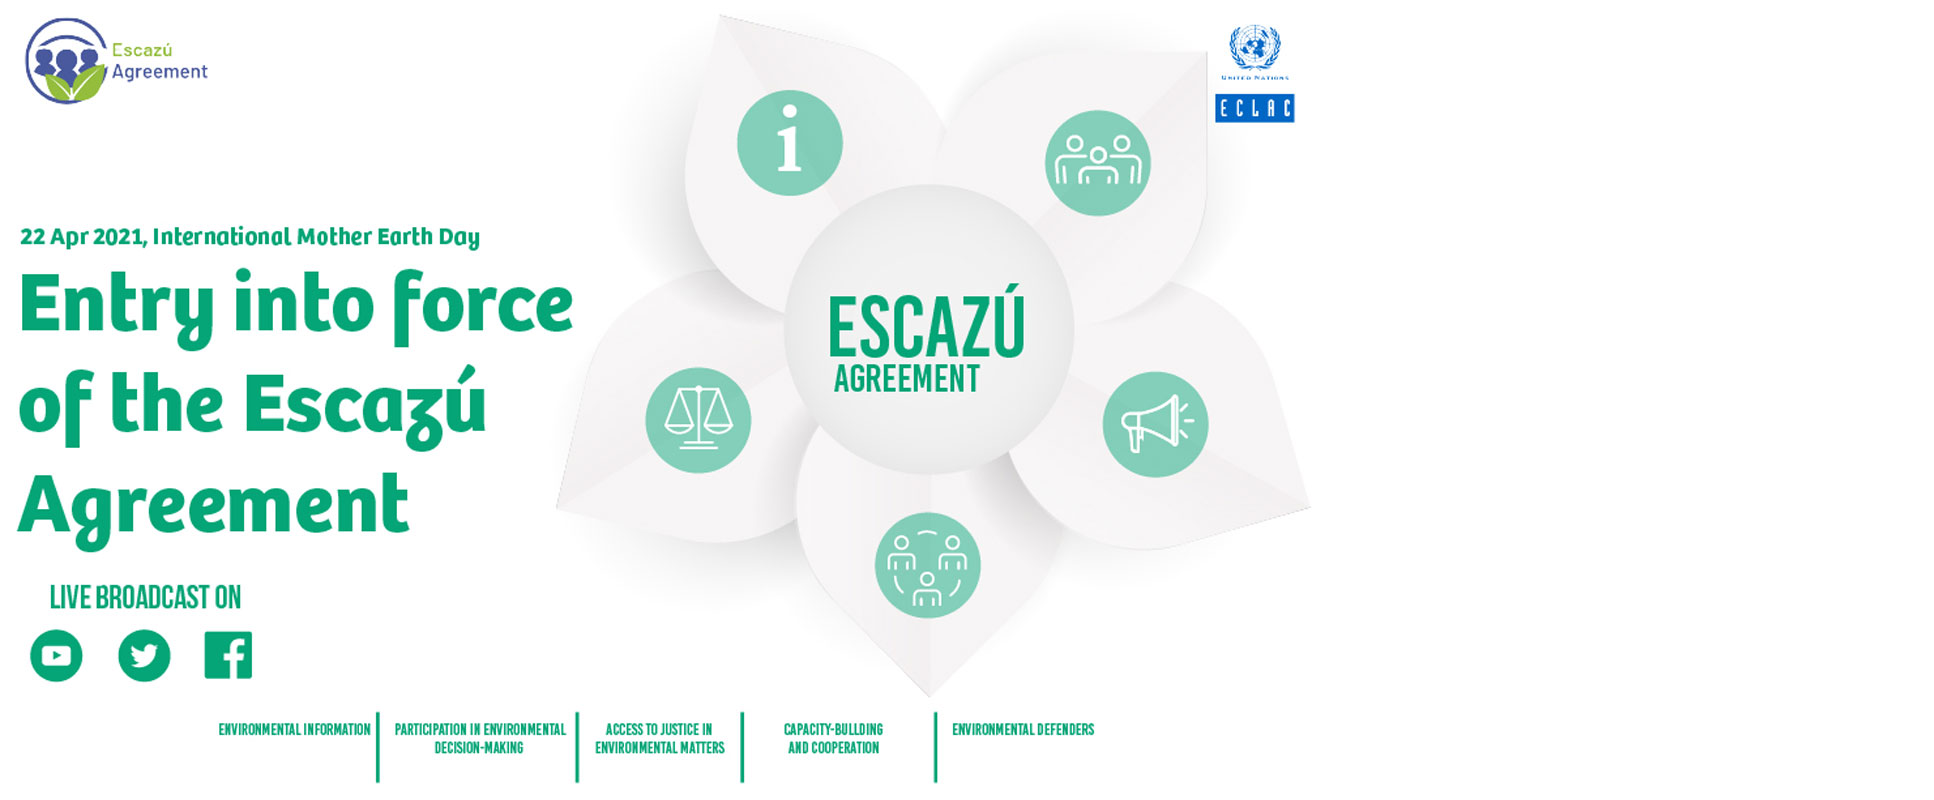 Countries Will Celebrate the Escazú Agreement's Entry into Force on International Mother Earth Day